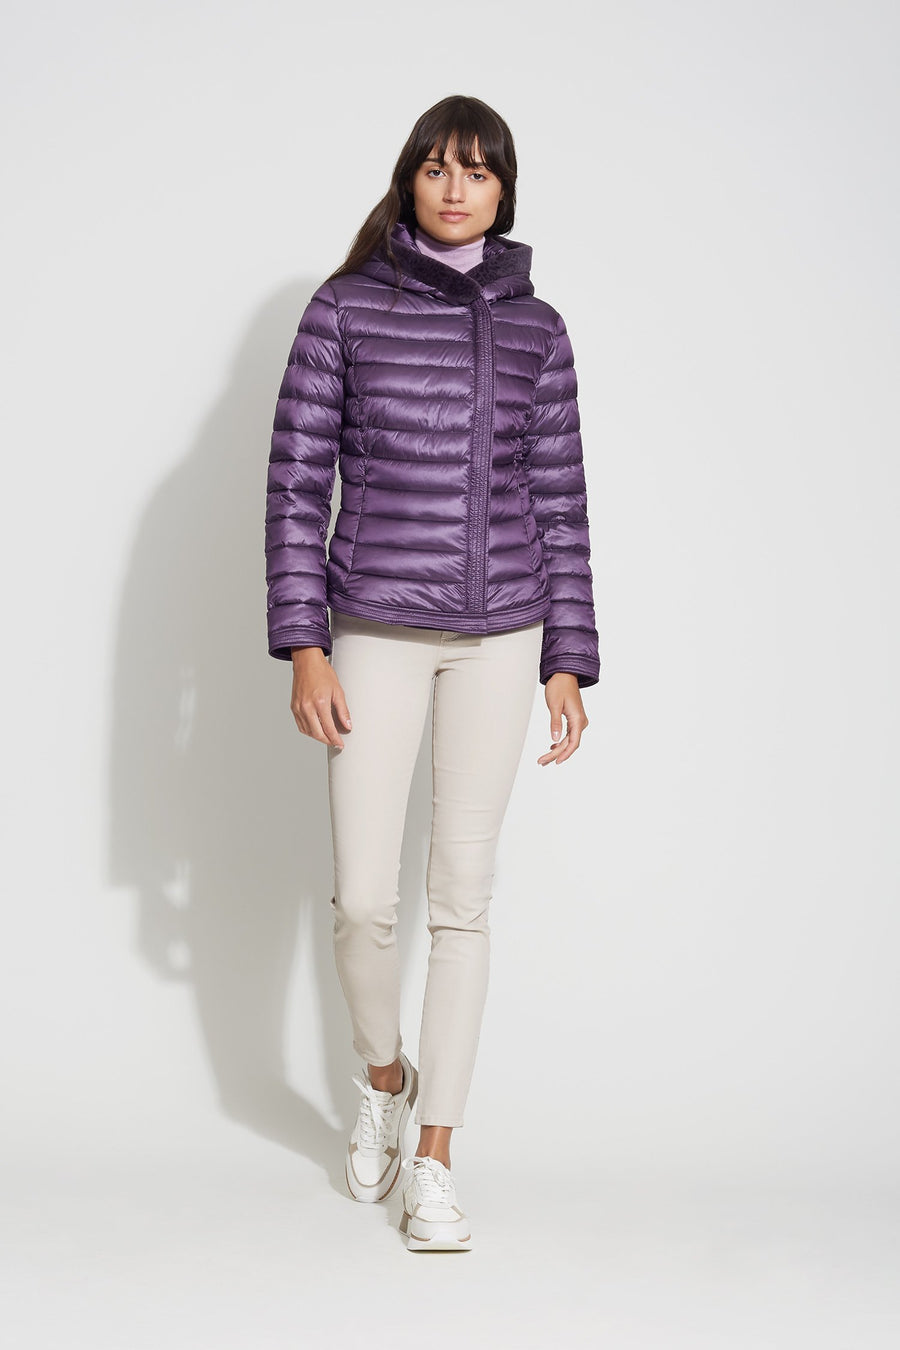 Lust Fabric Puffer with Faux Fur Trim - Bernardo Fashions